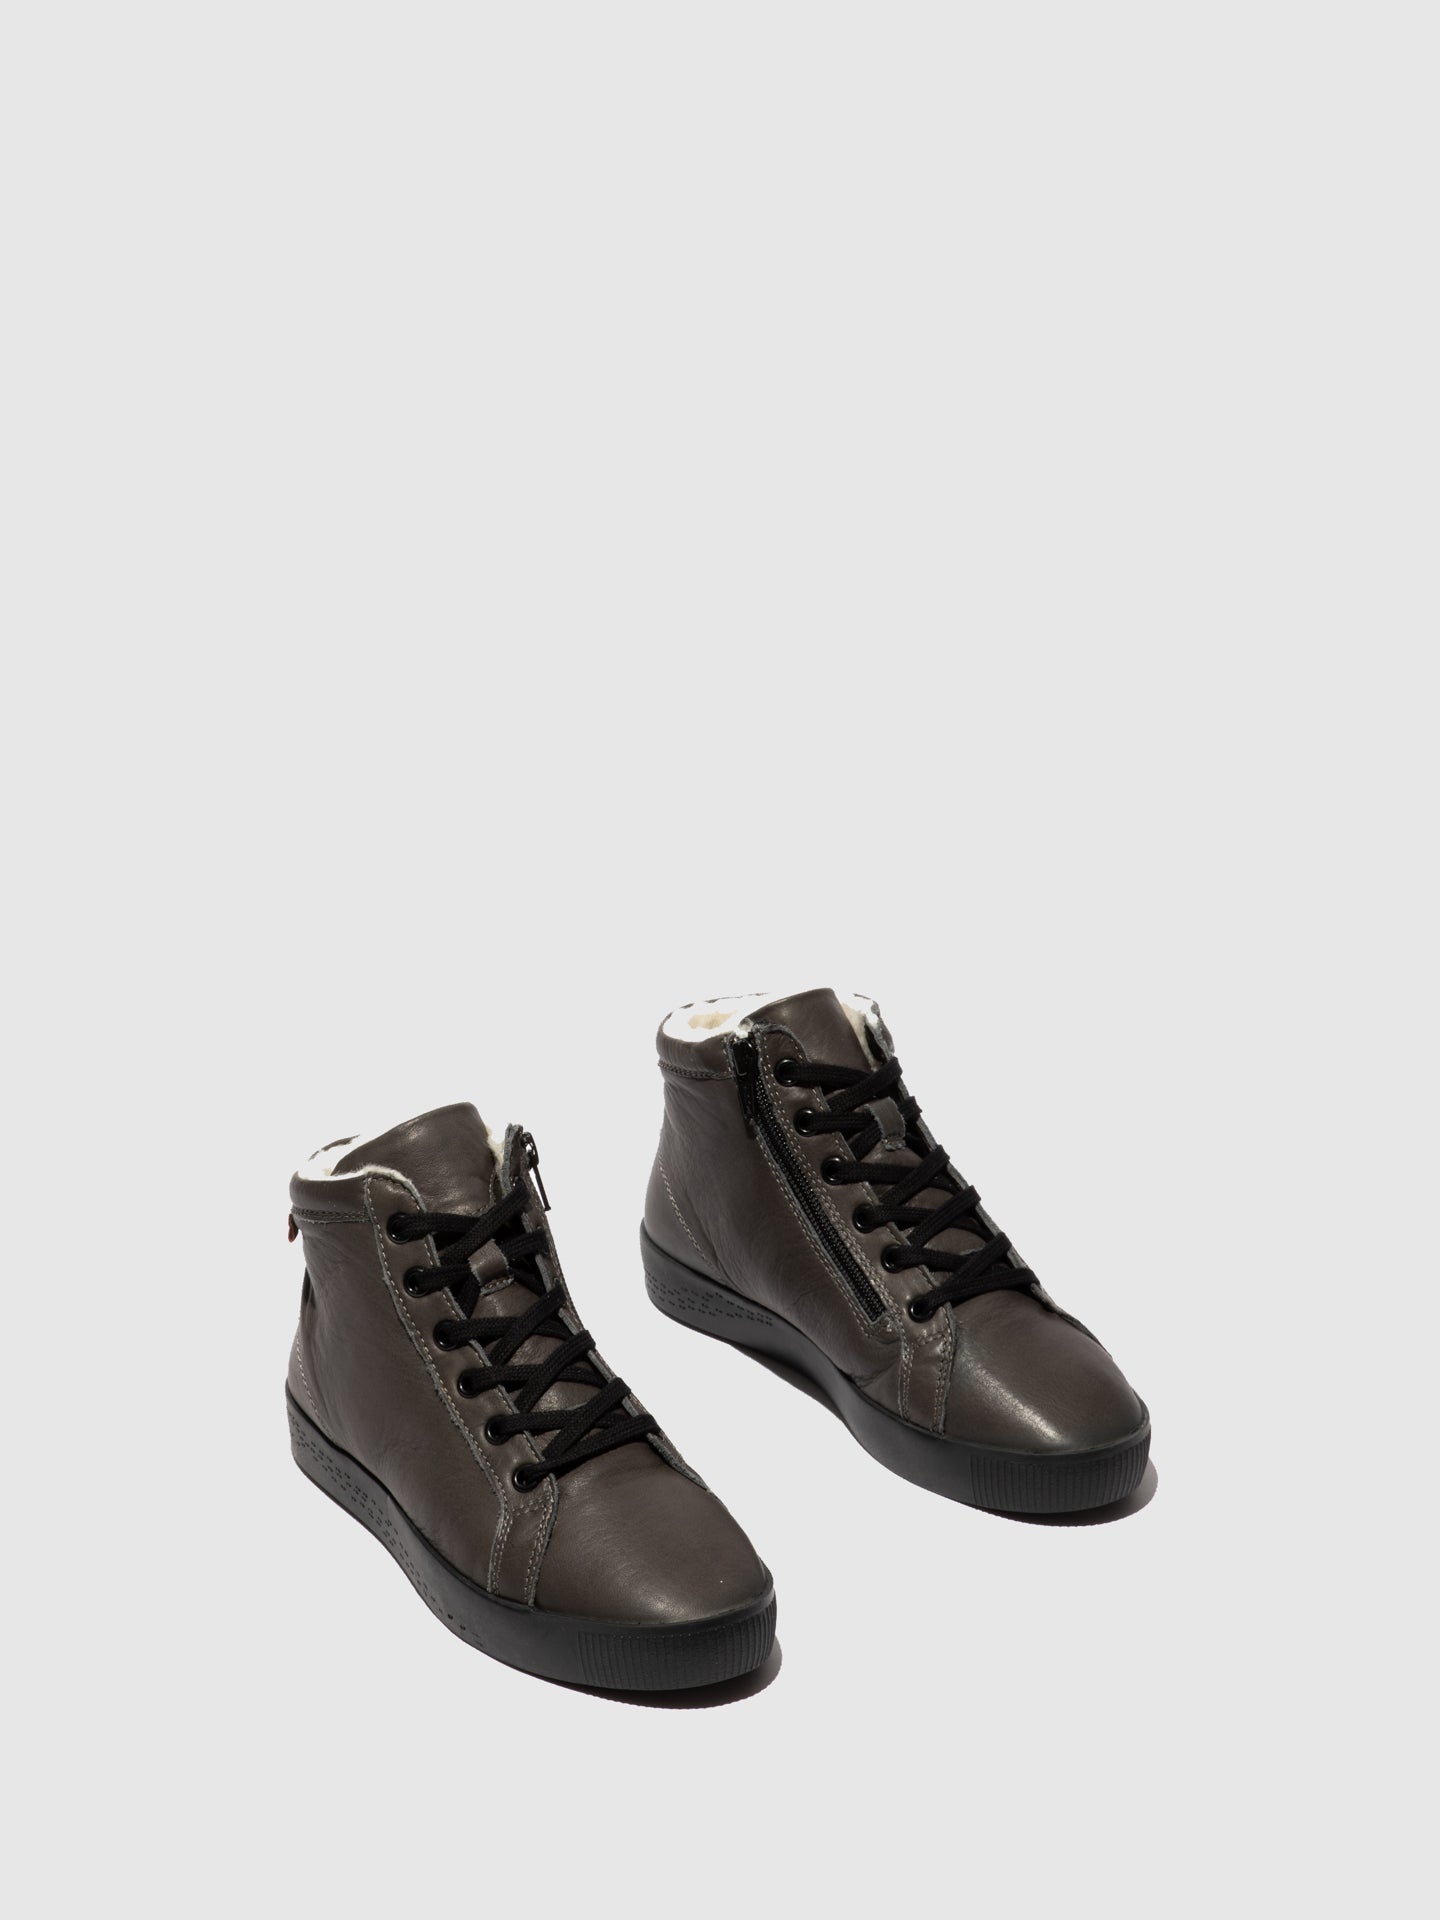 Softinos Zip Up Ankle Boots SAGE602SOF GREY (W/BLACK SOLE AND LACE)